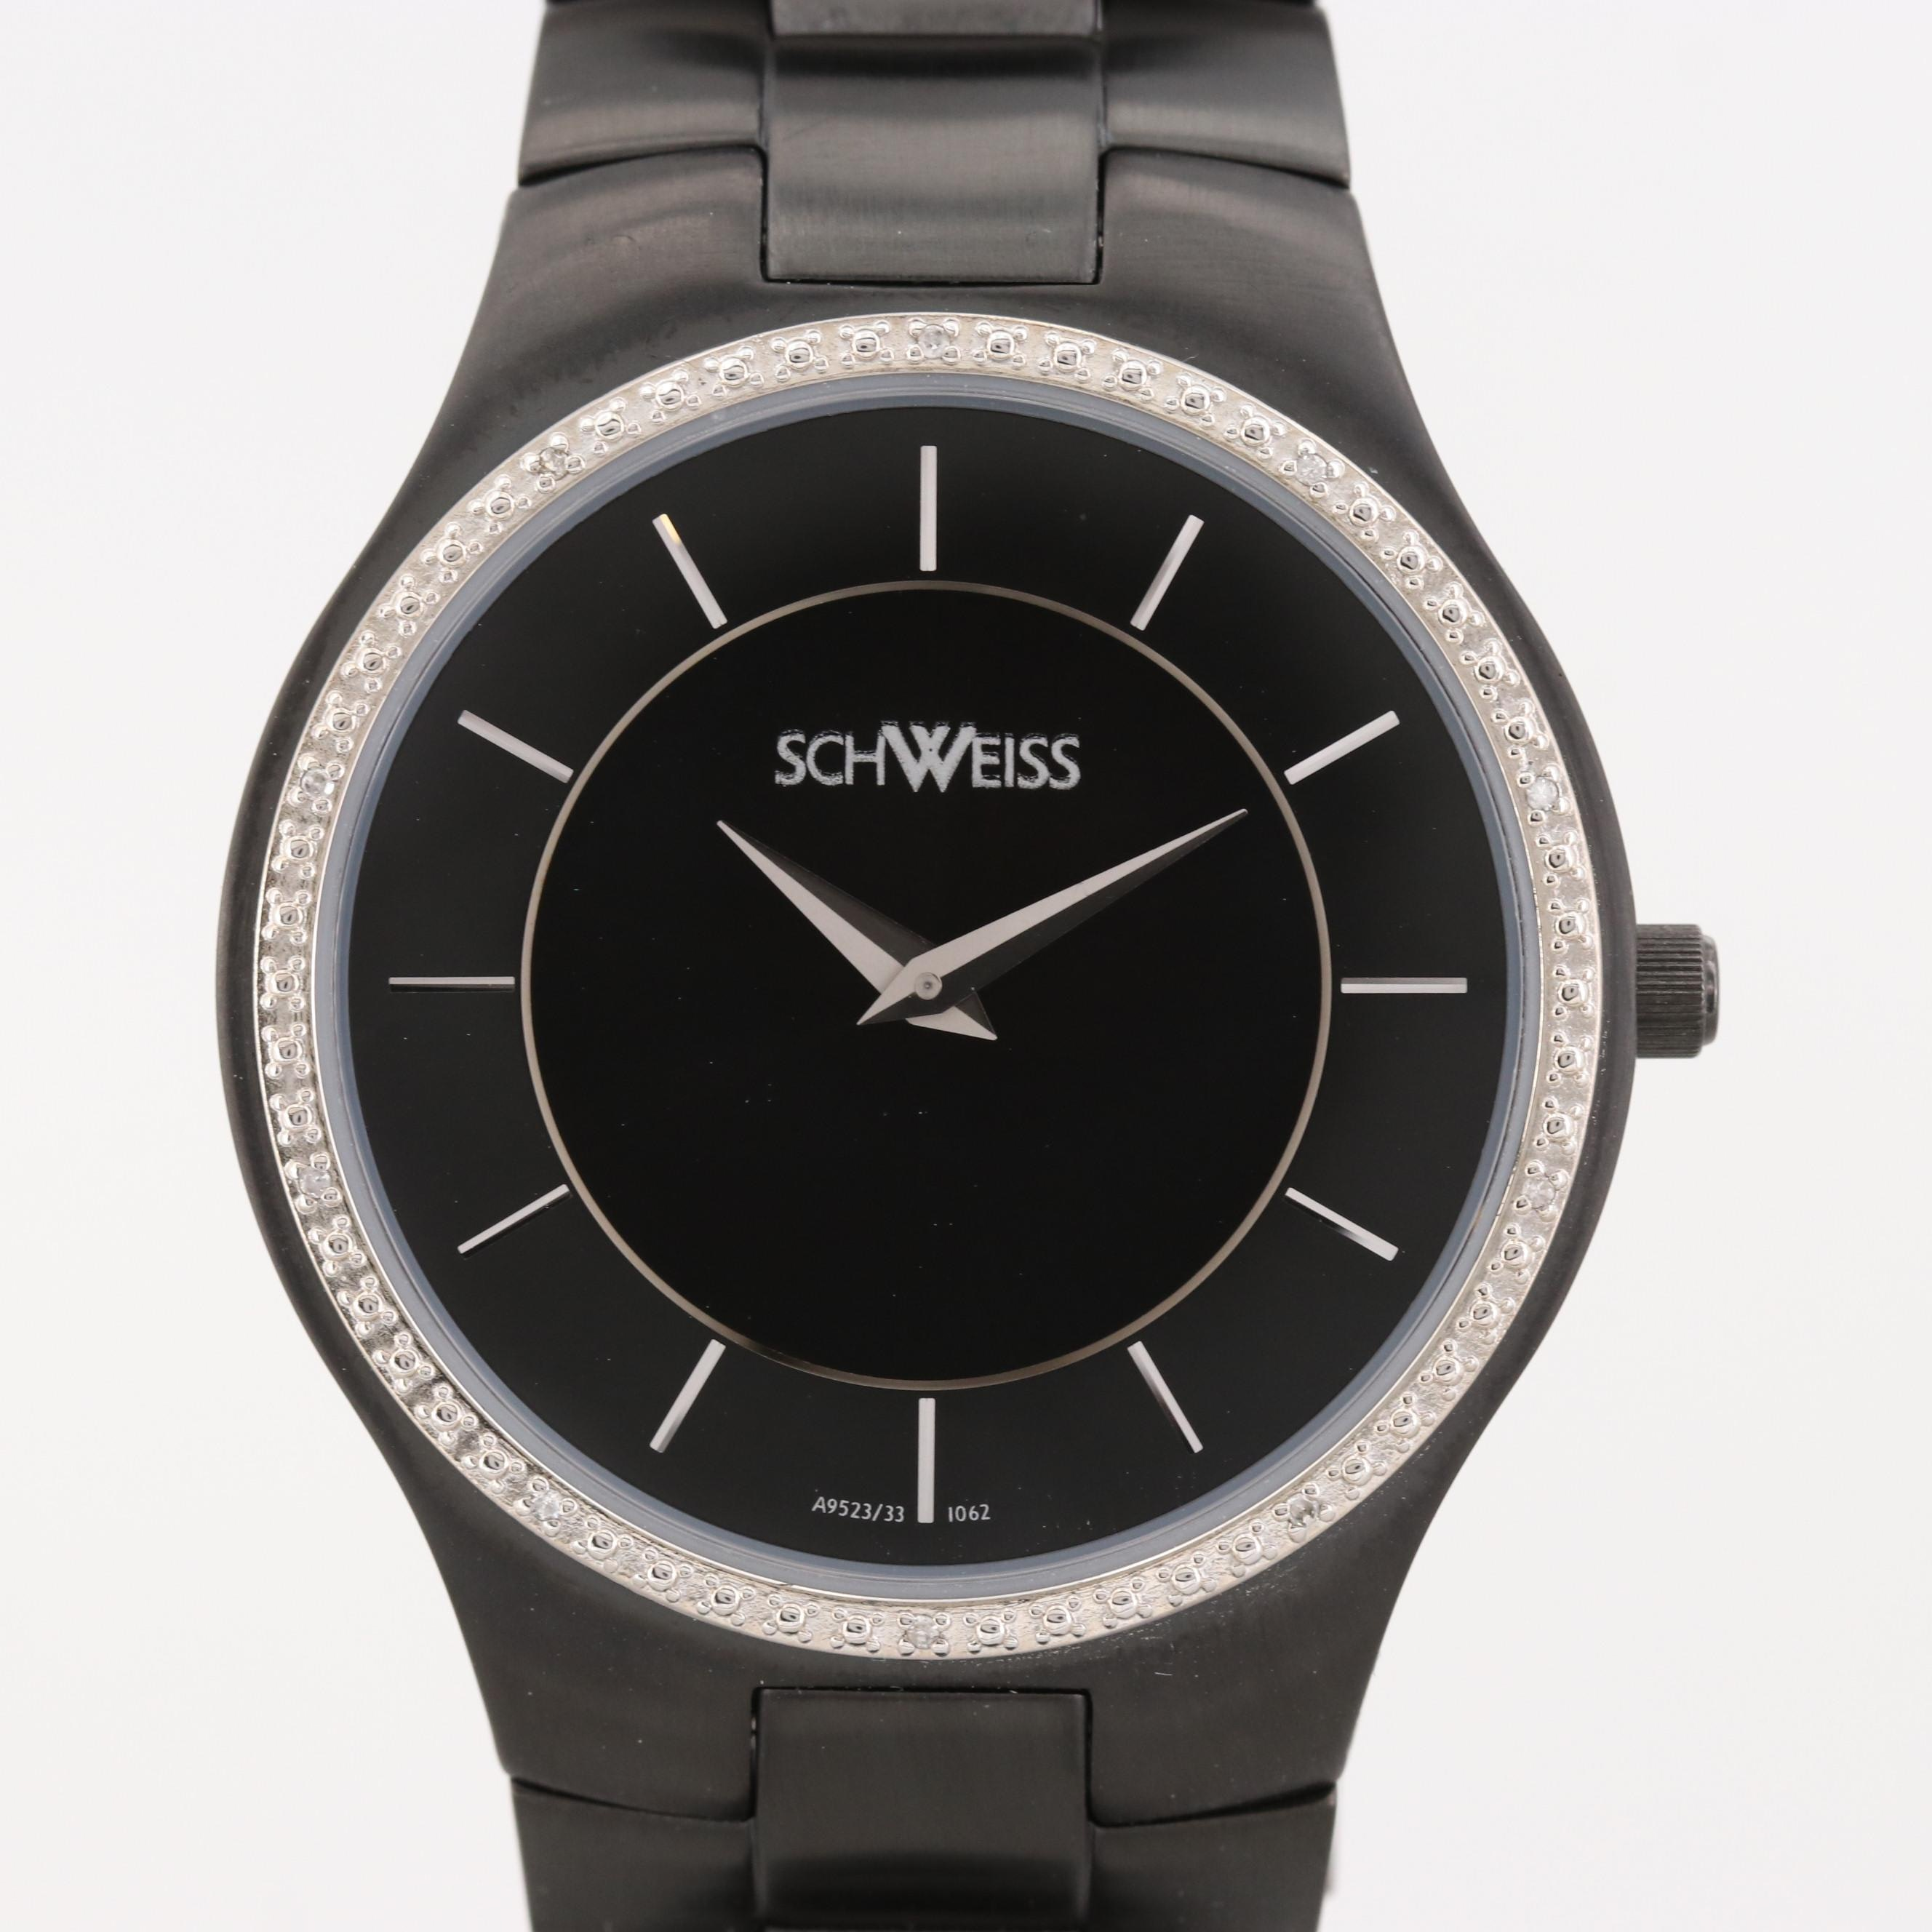 Schweiss Black Ion Plated Stainless Steel Quartz Wristwatch With Diamond Bezel